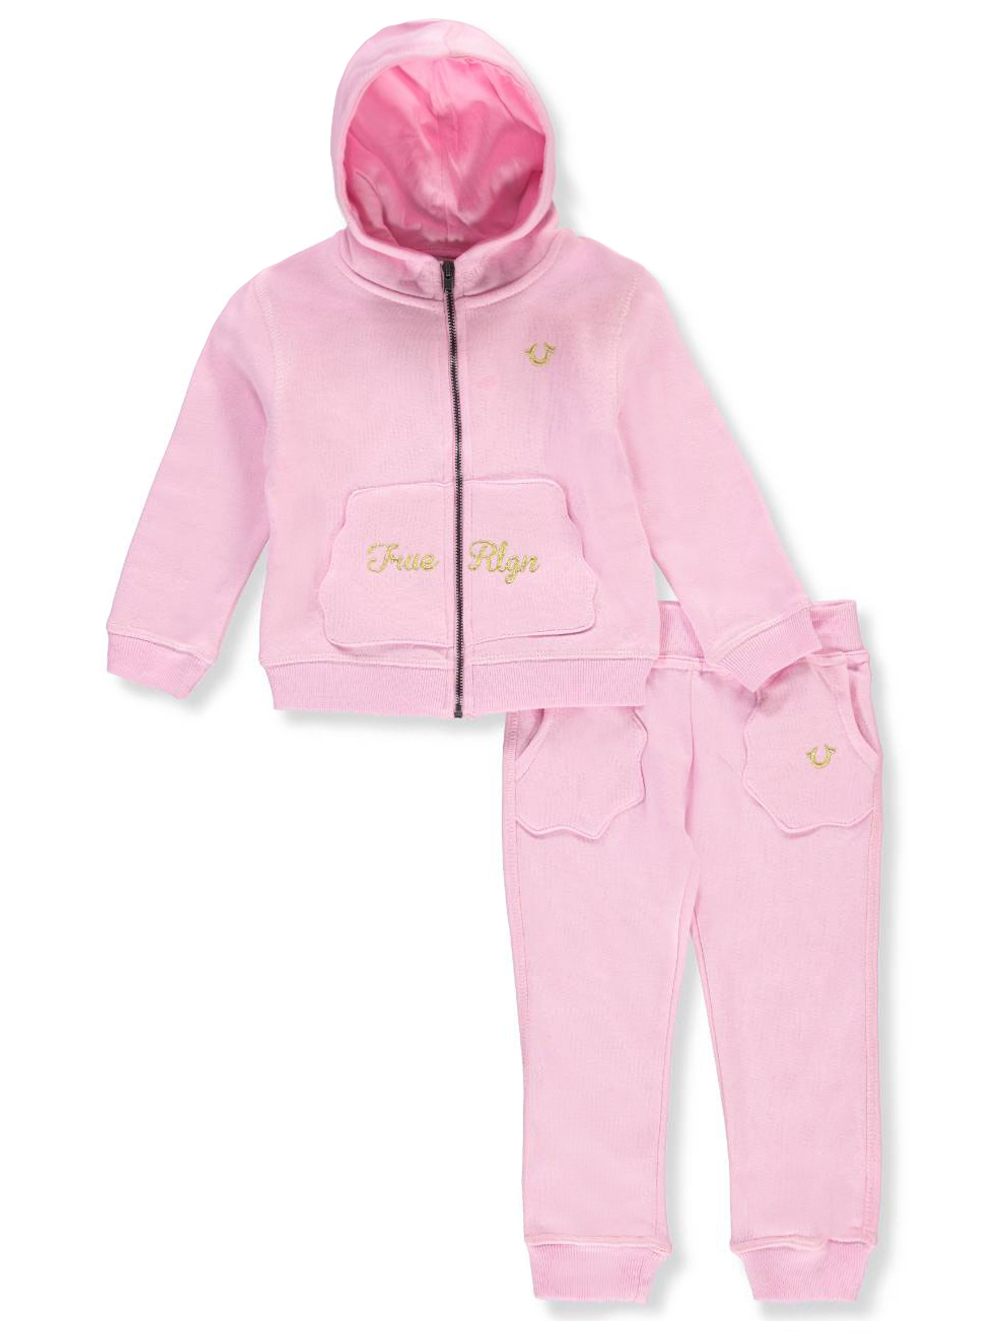 82ae085c05 2-Piece Sweatsuit Pants Set by True Religion in Pink